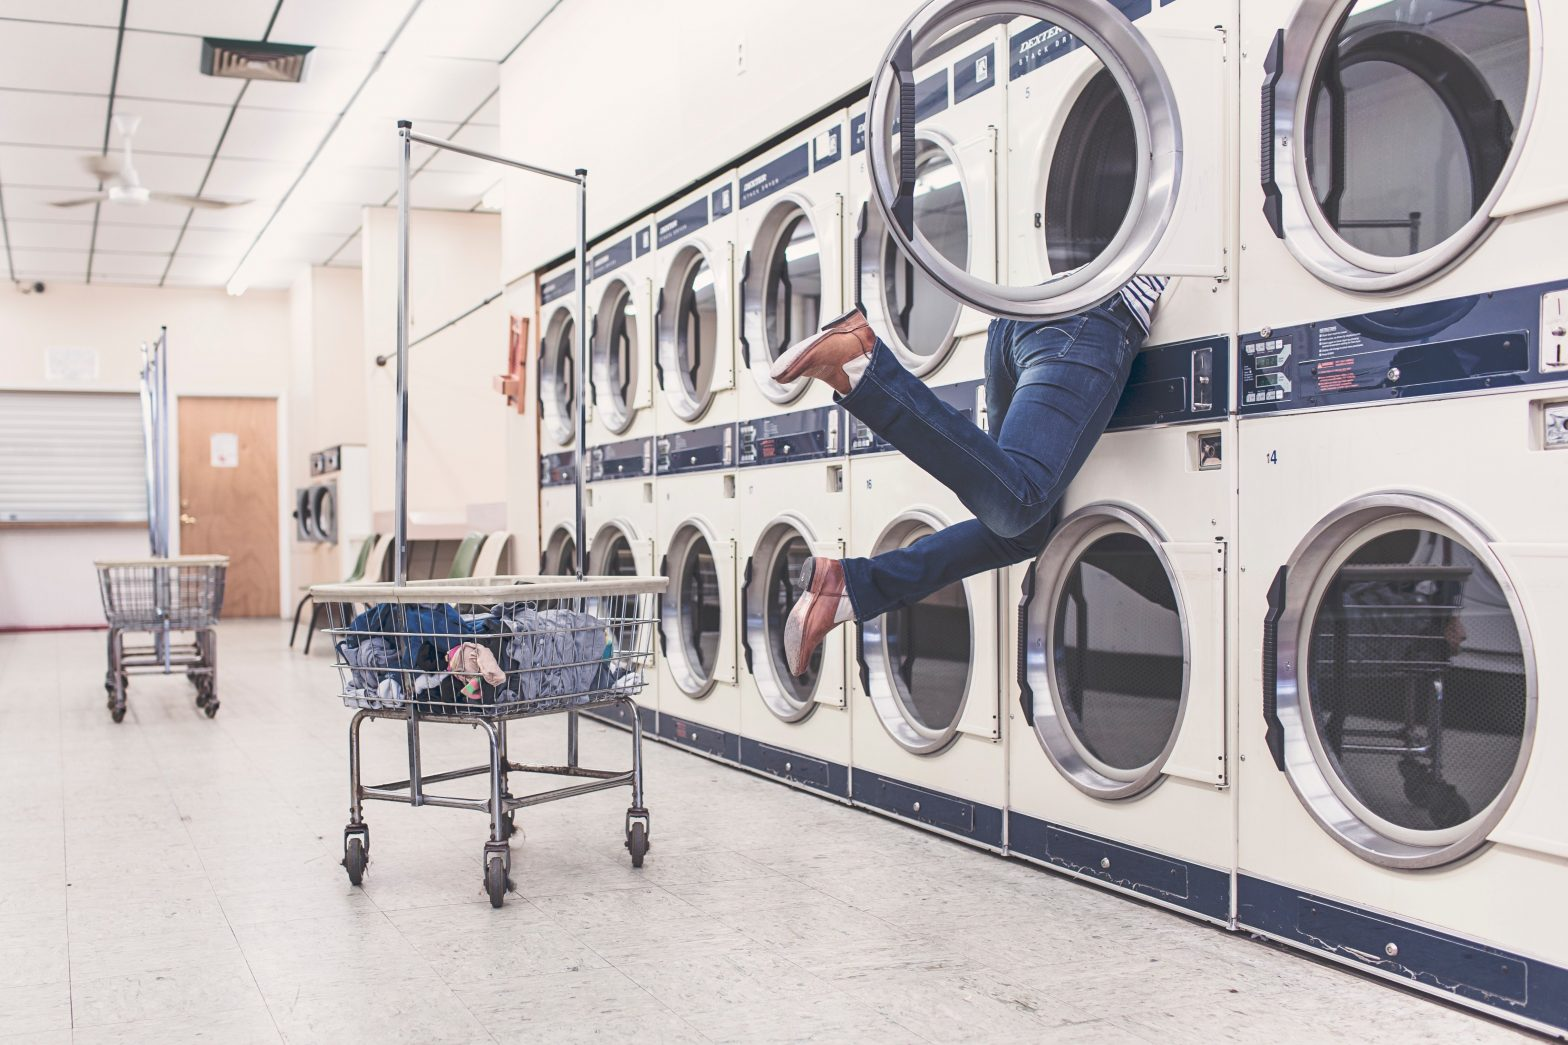 Person head first in washing machine in laundry mat